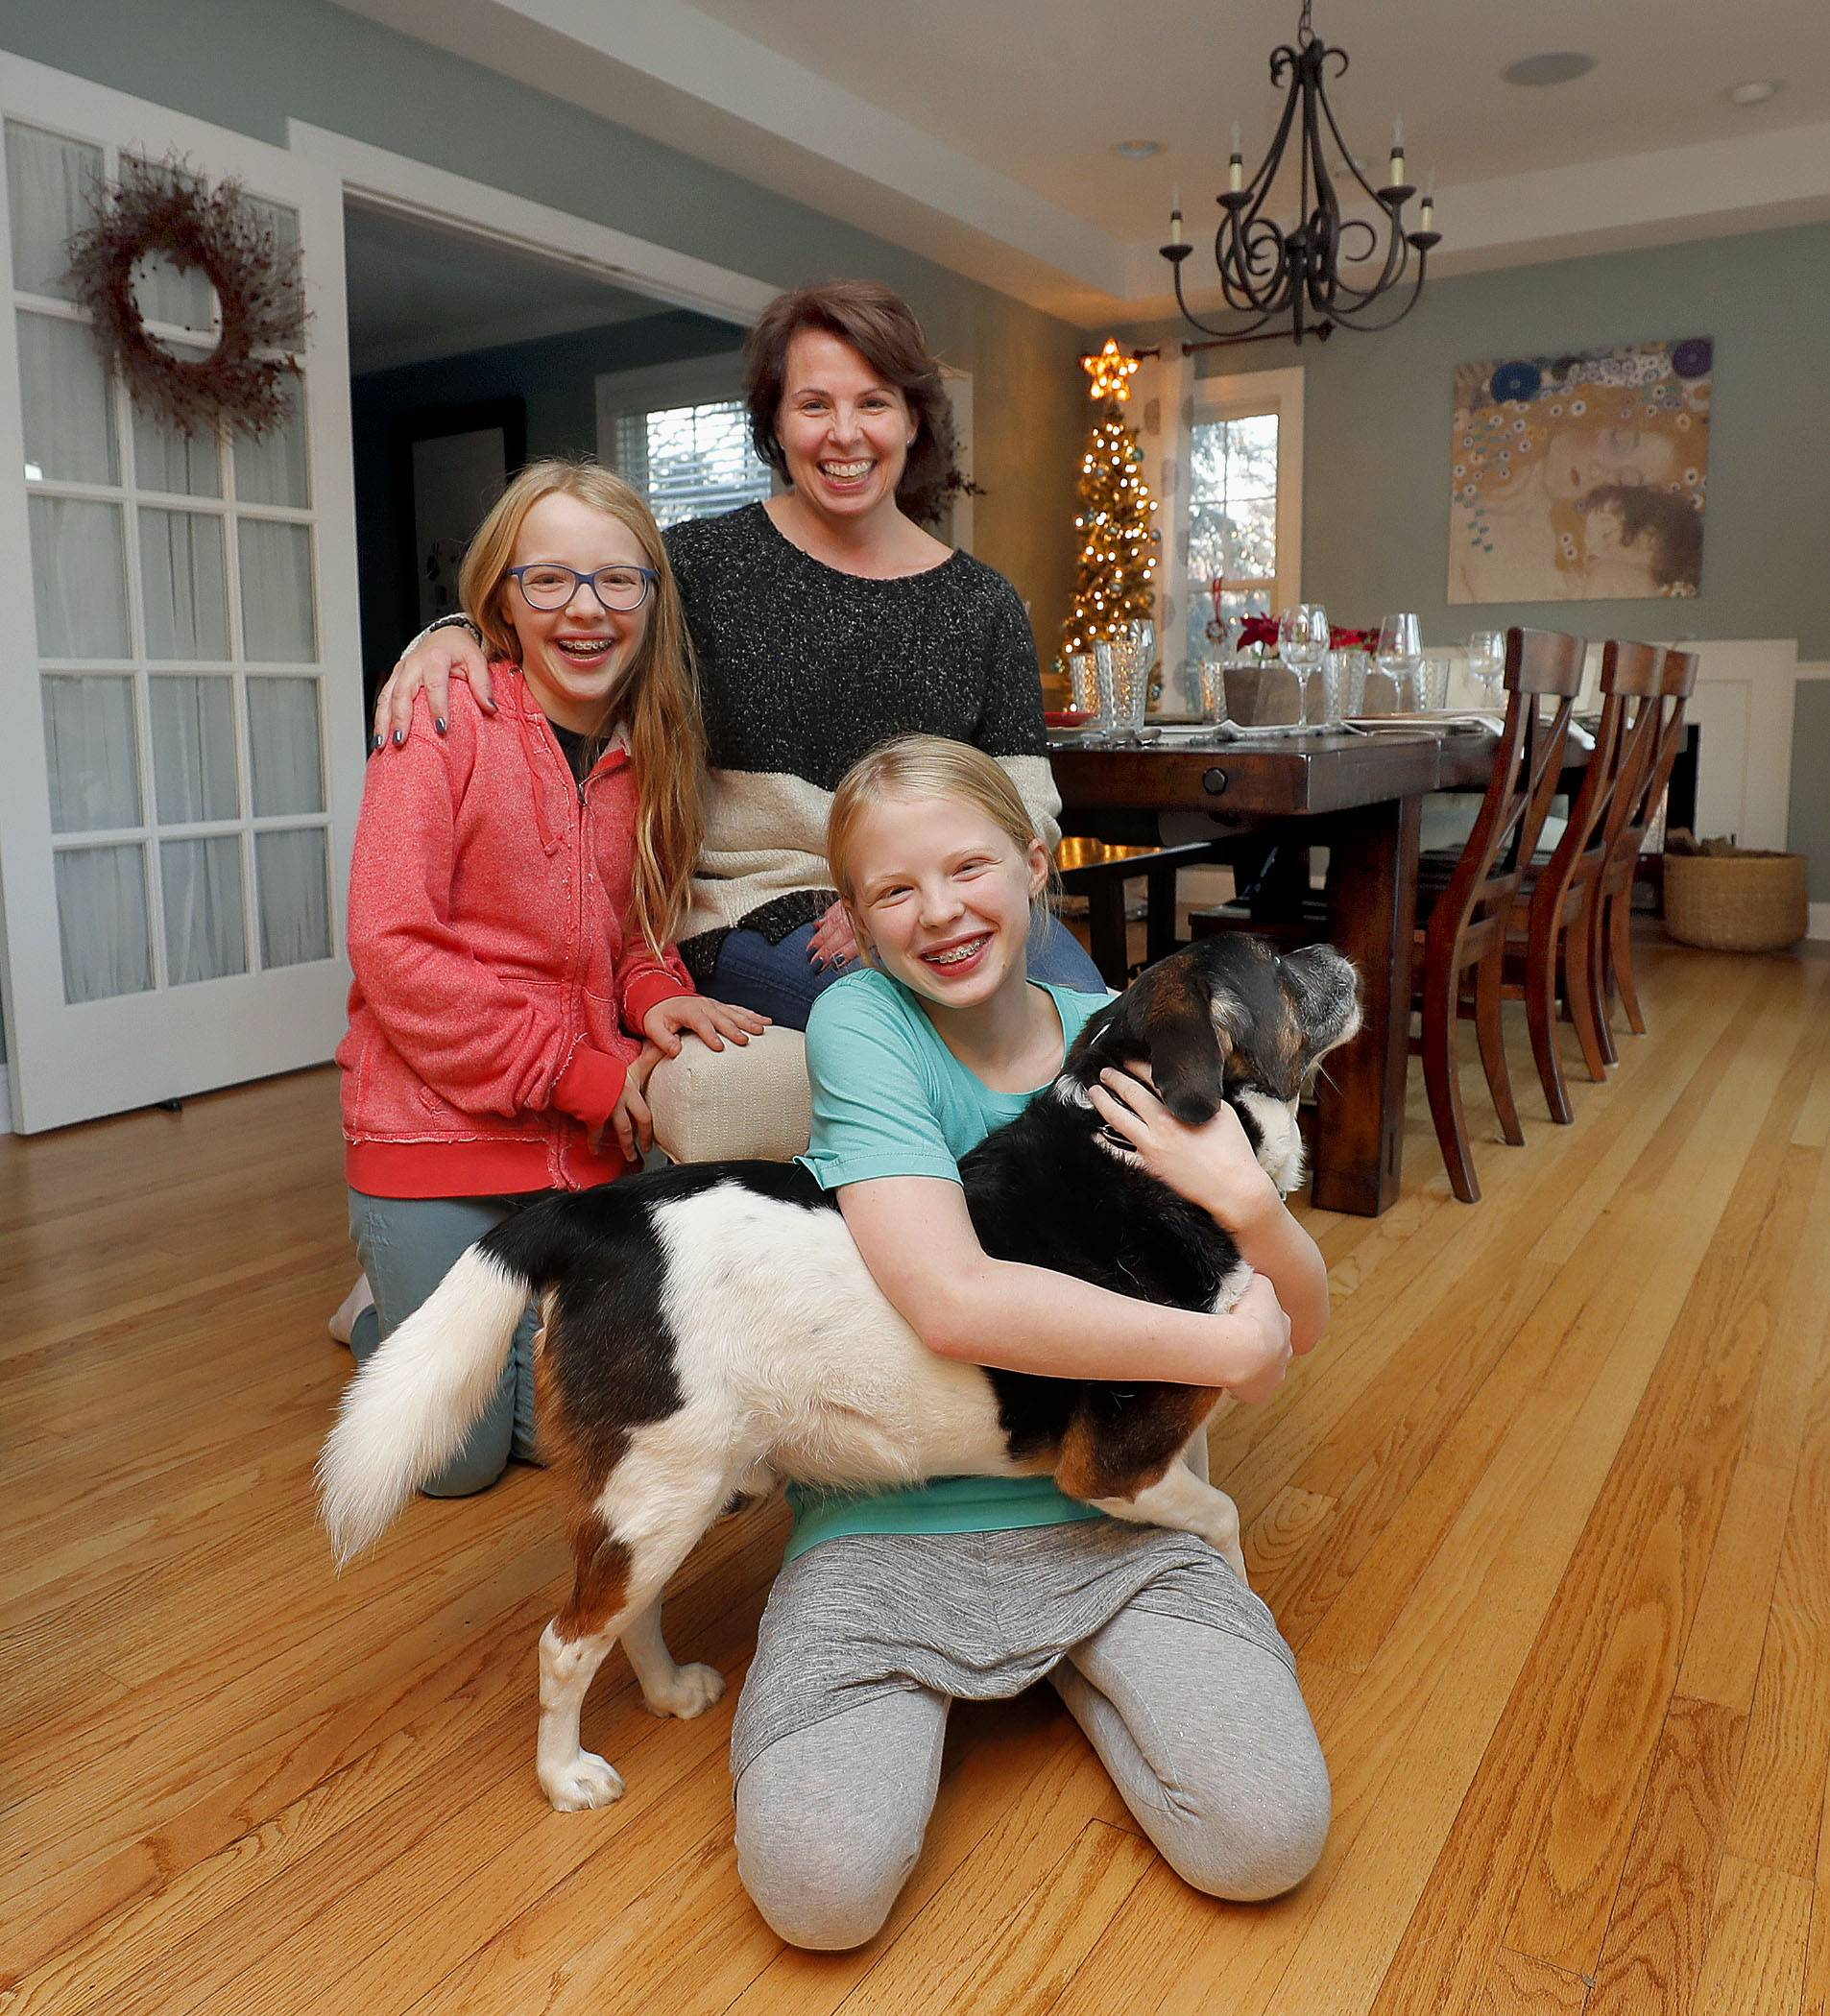 The Meier family, from left, Fiona, 13, Barb, Amelia, 11, and dog Jake, will open their house for the annual Mount Prospect Holiday Housewalk Friday, Nov. 30.